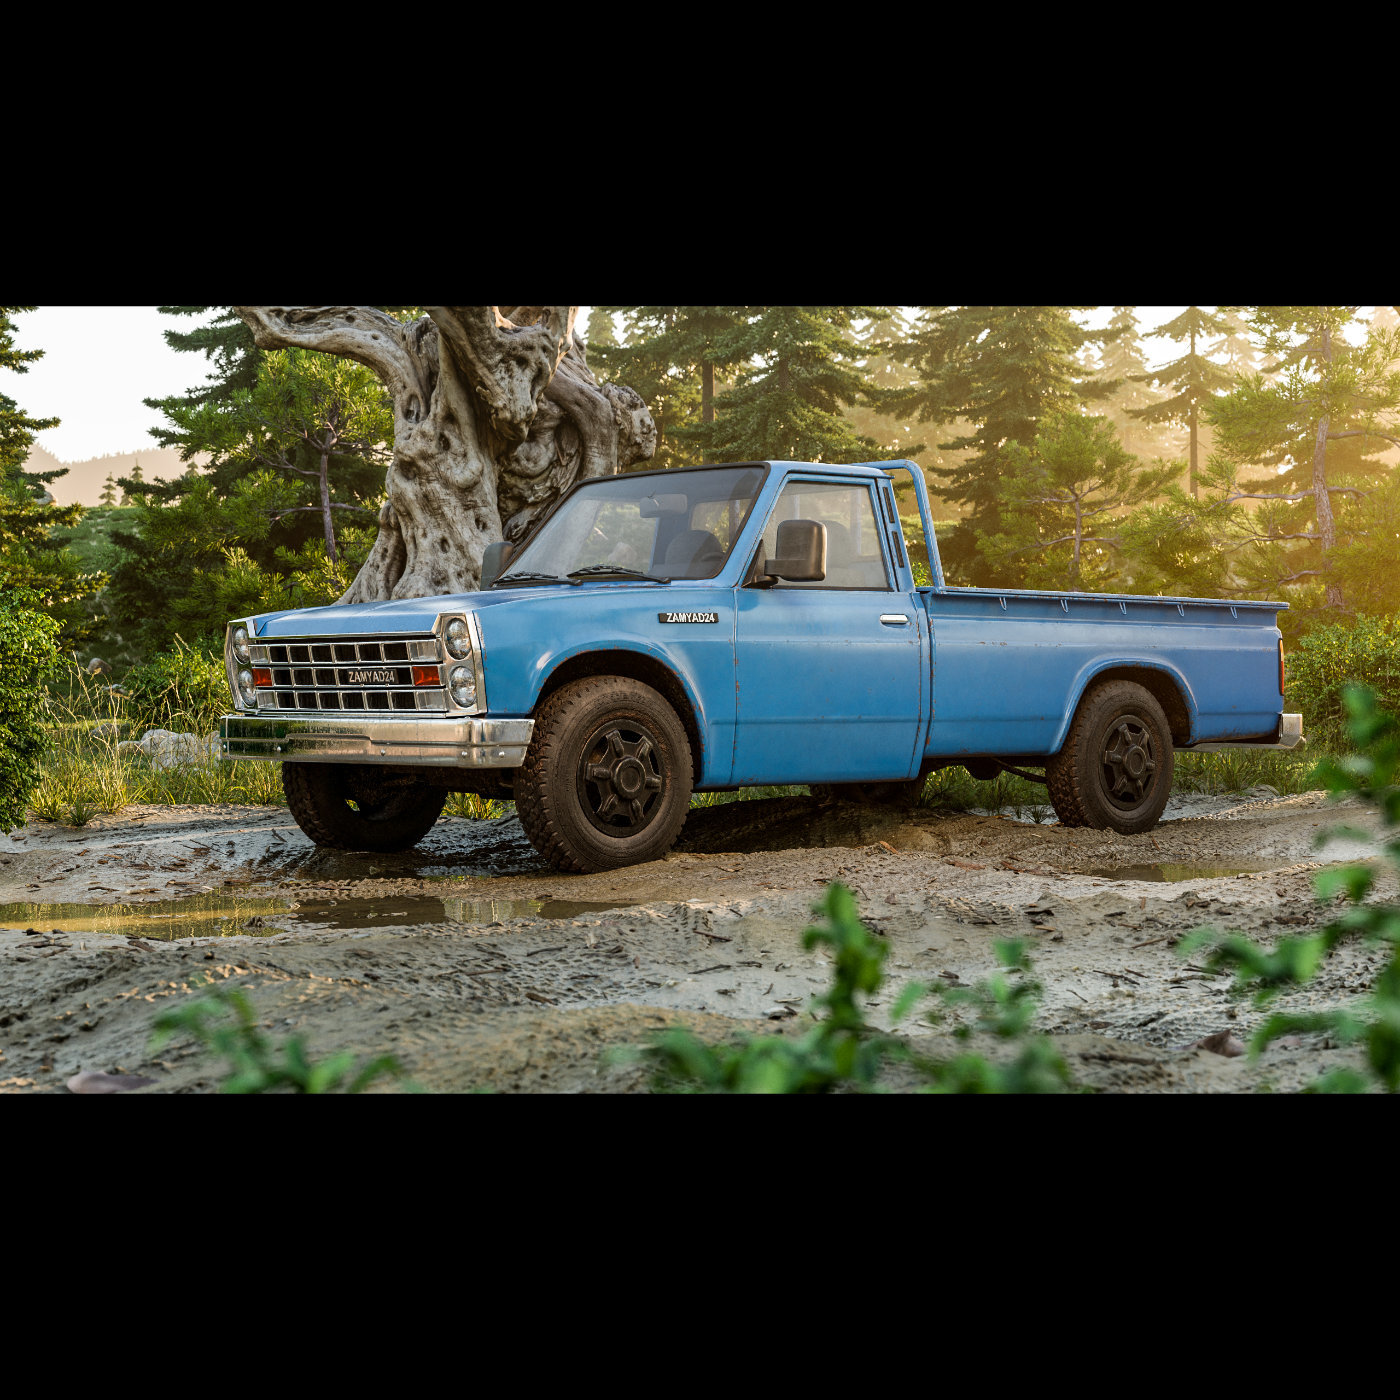 Truck by the forest 2